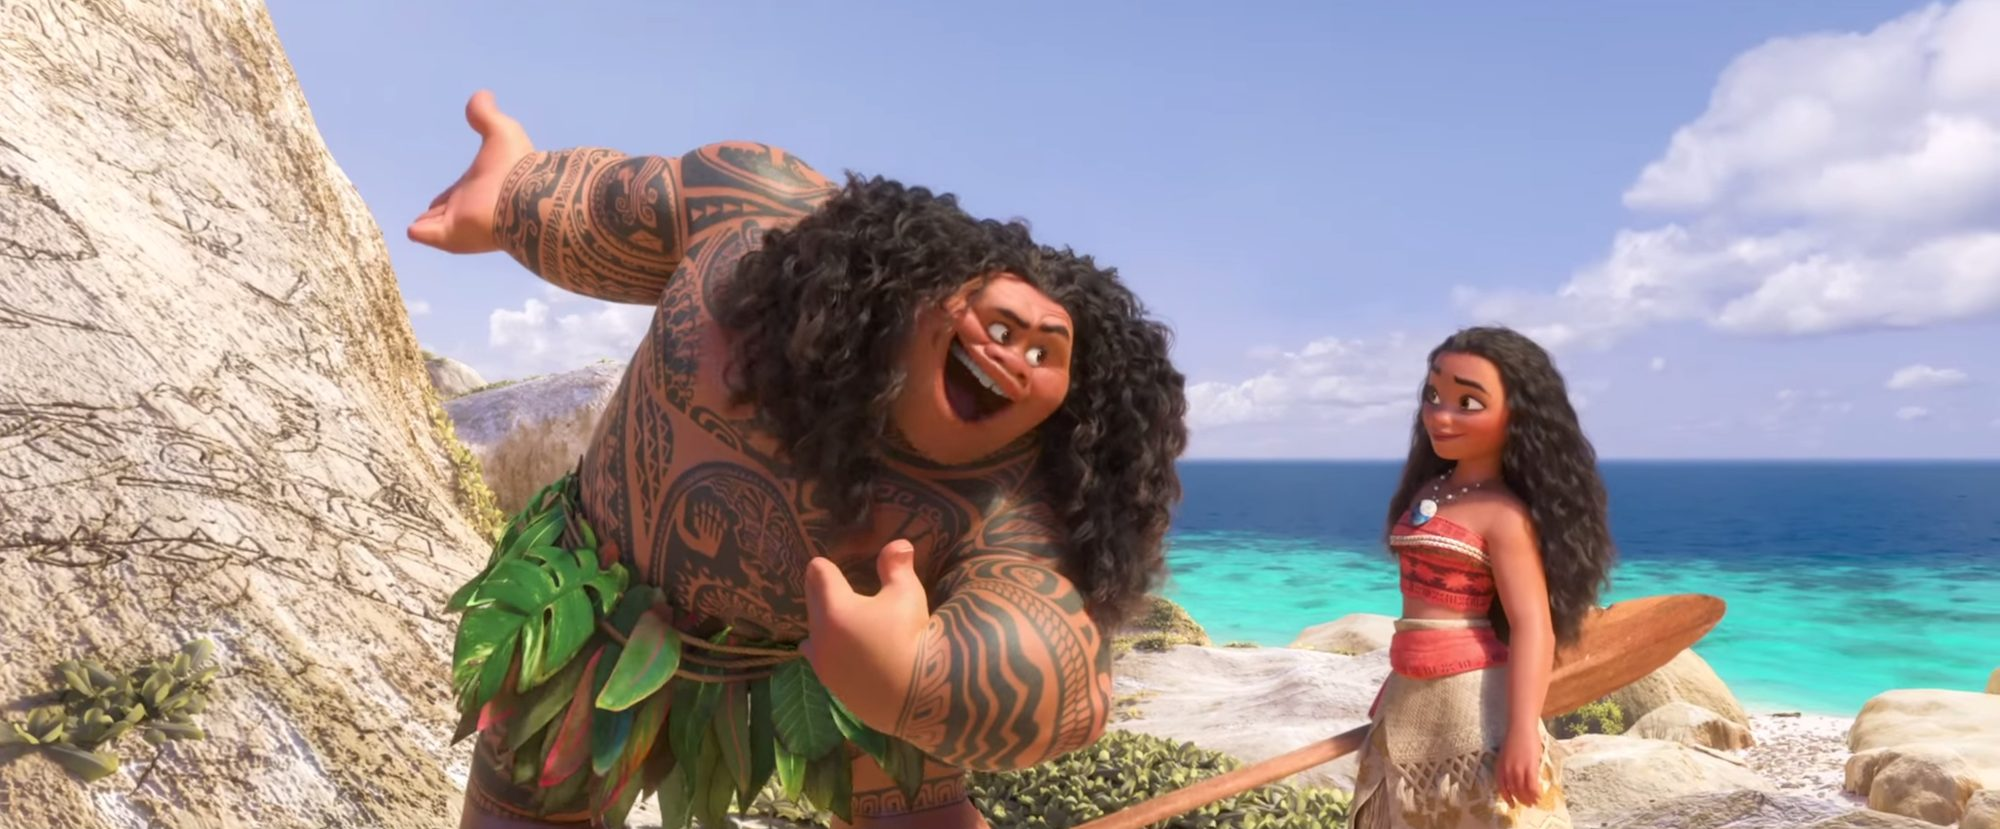 """8906f56451f The pivotal line between Maui and Moana is what specifically points this  out. Maui tells Moana she is a """"princess"""